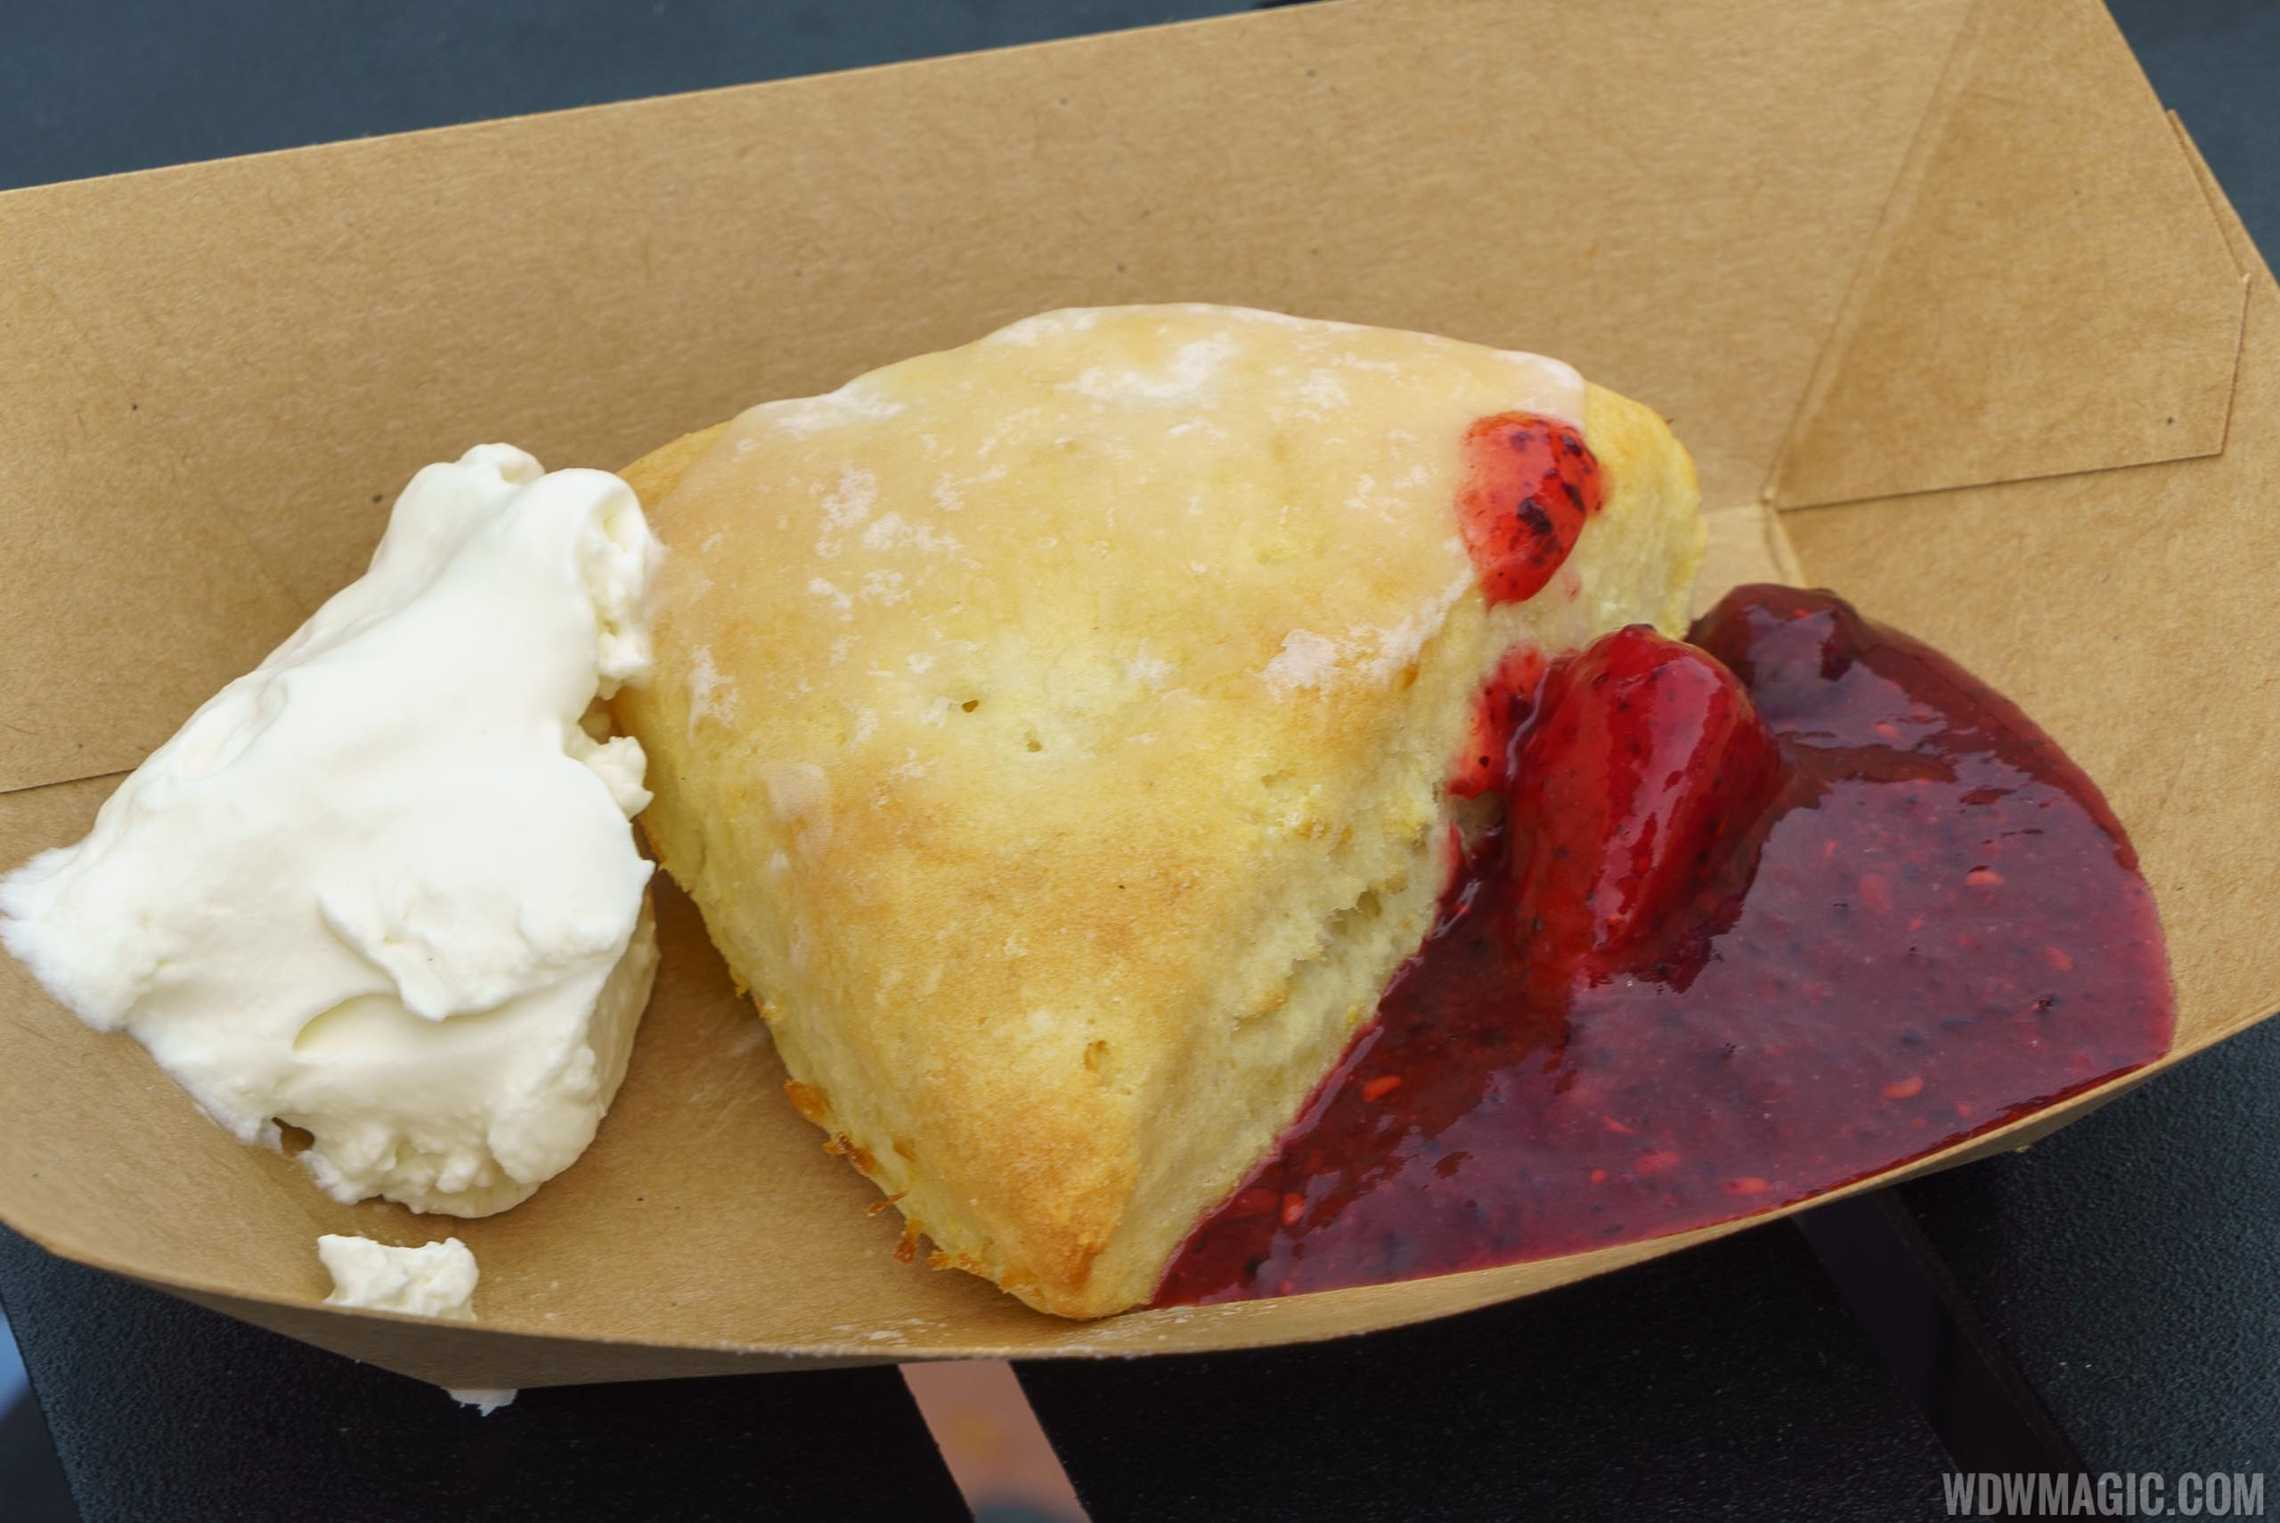 2016 Epcot Flower and Garden Festival Outdoor Kitchen - Cider House - Freshly Baked Lemon Scone $3.75